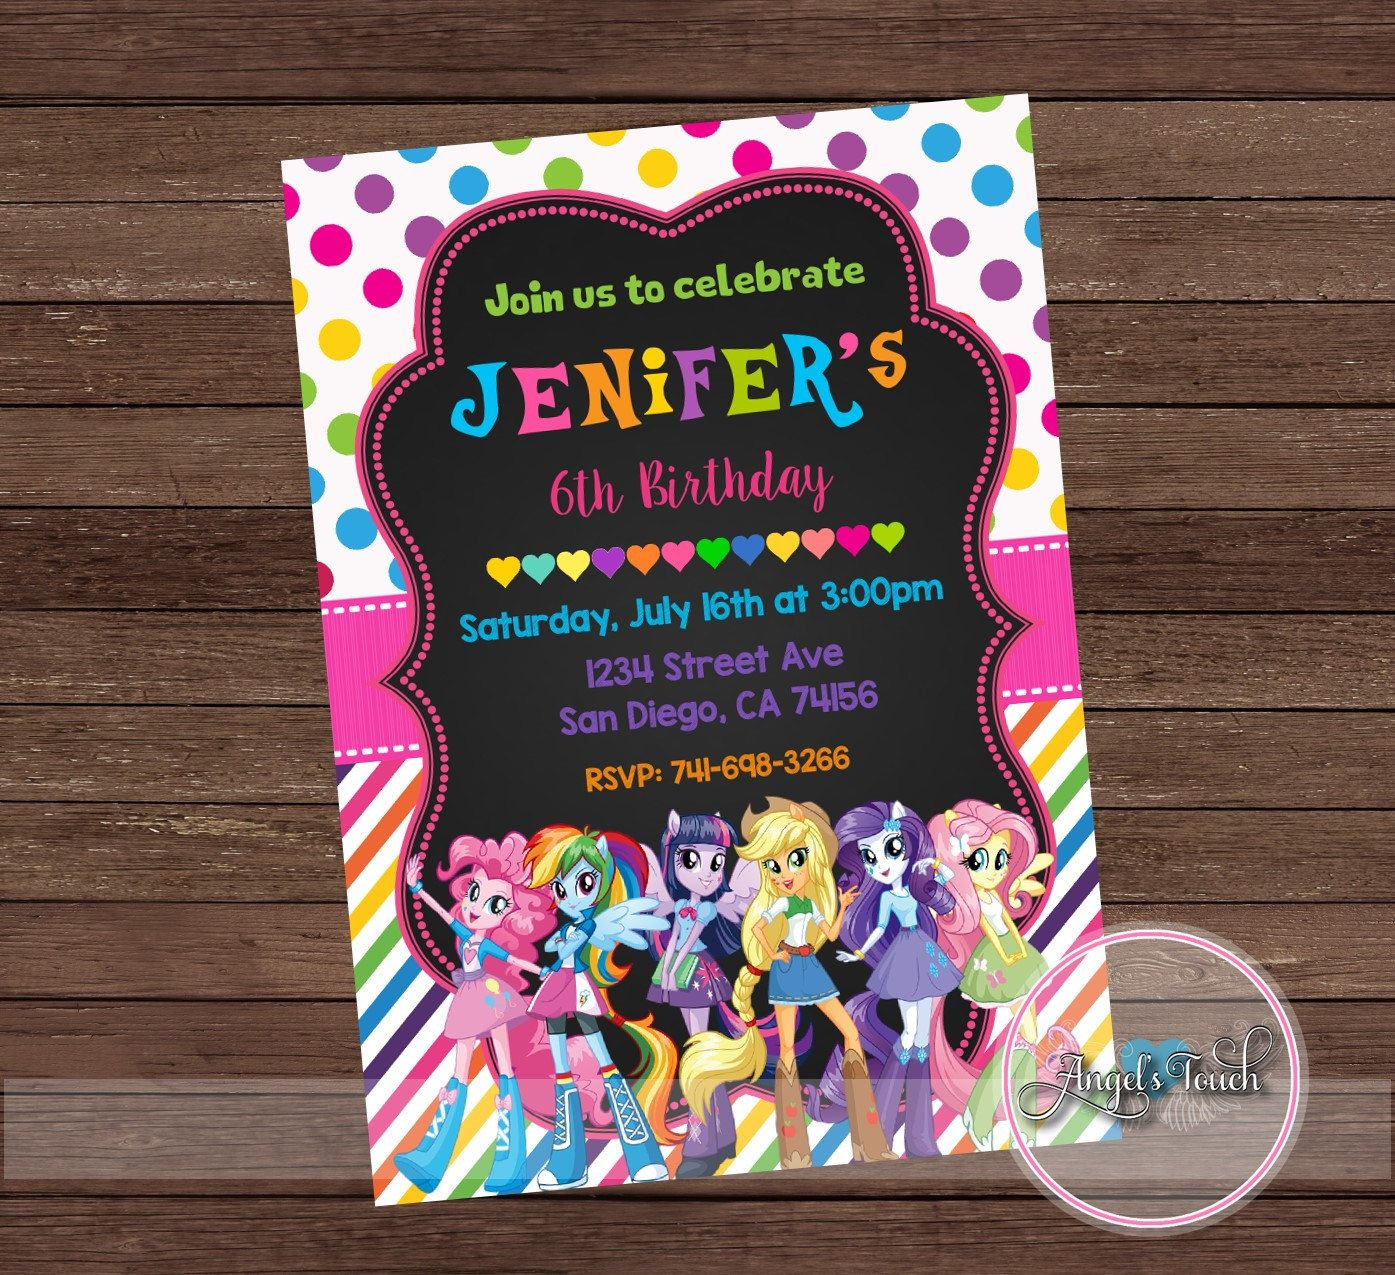 printable horse birthday party invitations free%0A template for letters of resignation